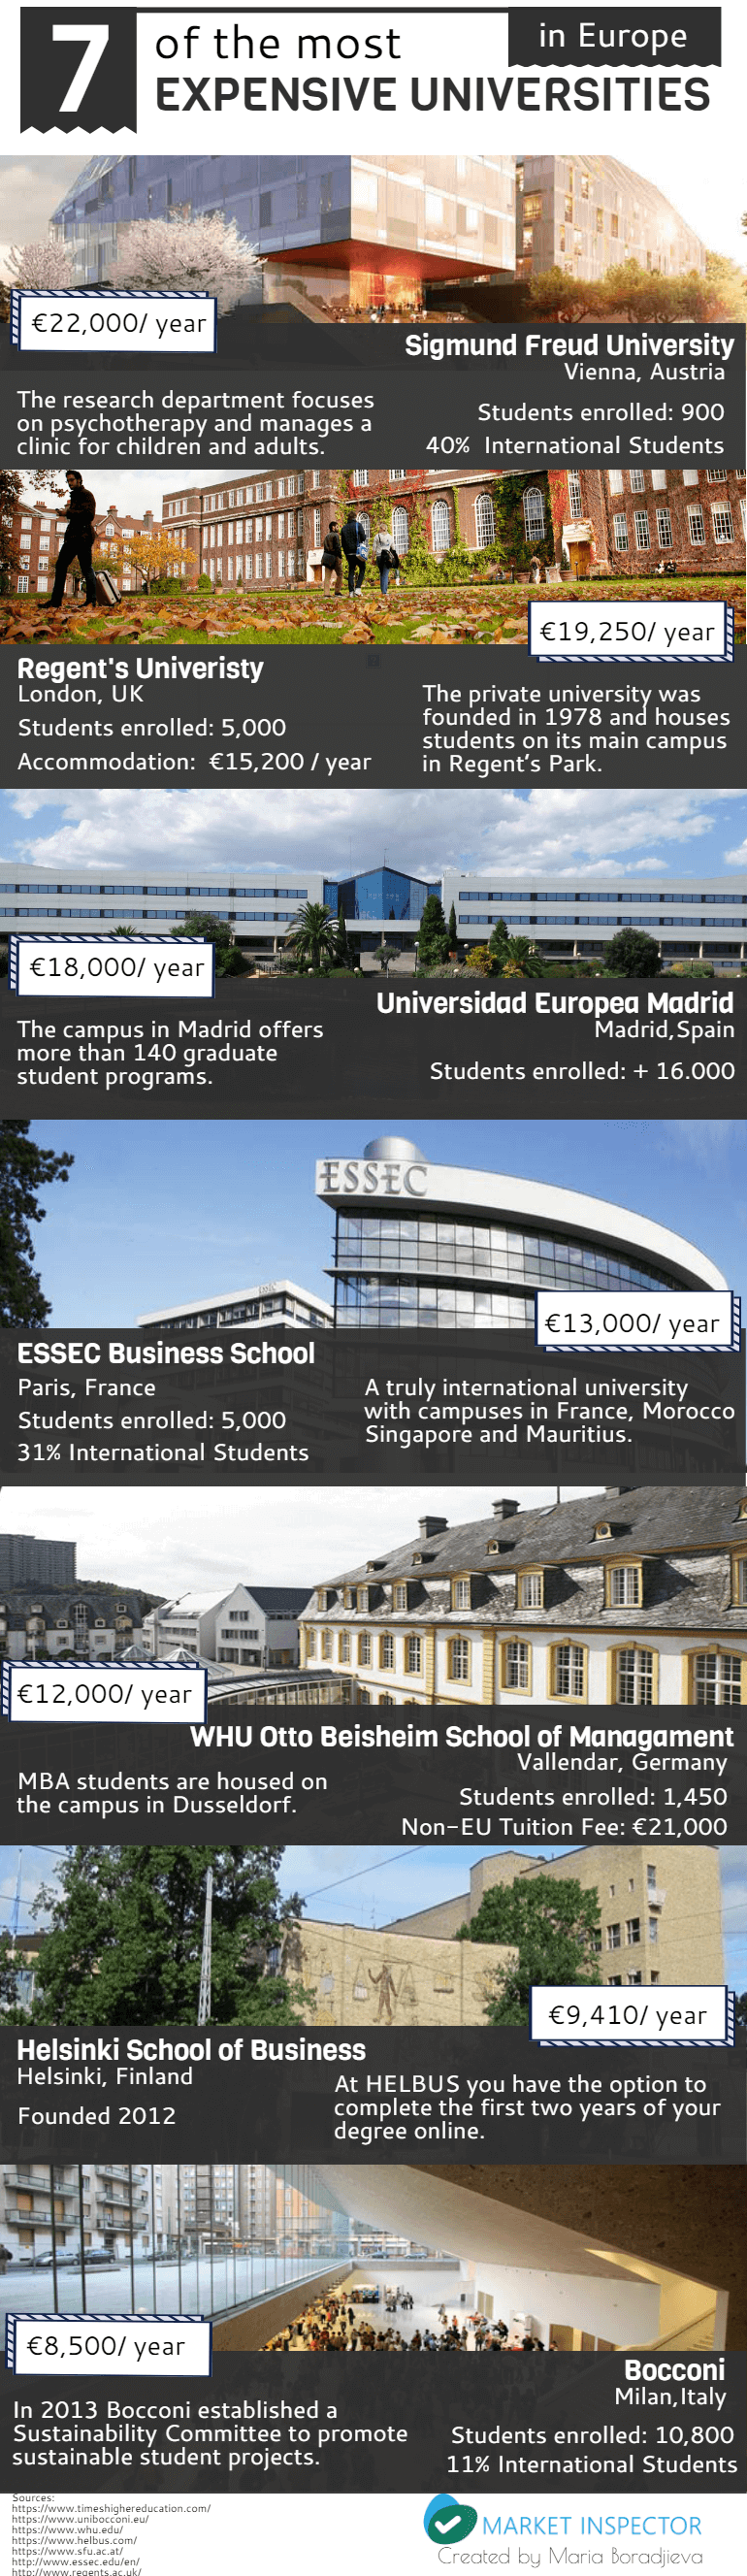 Most Expensive Universities in Europe